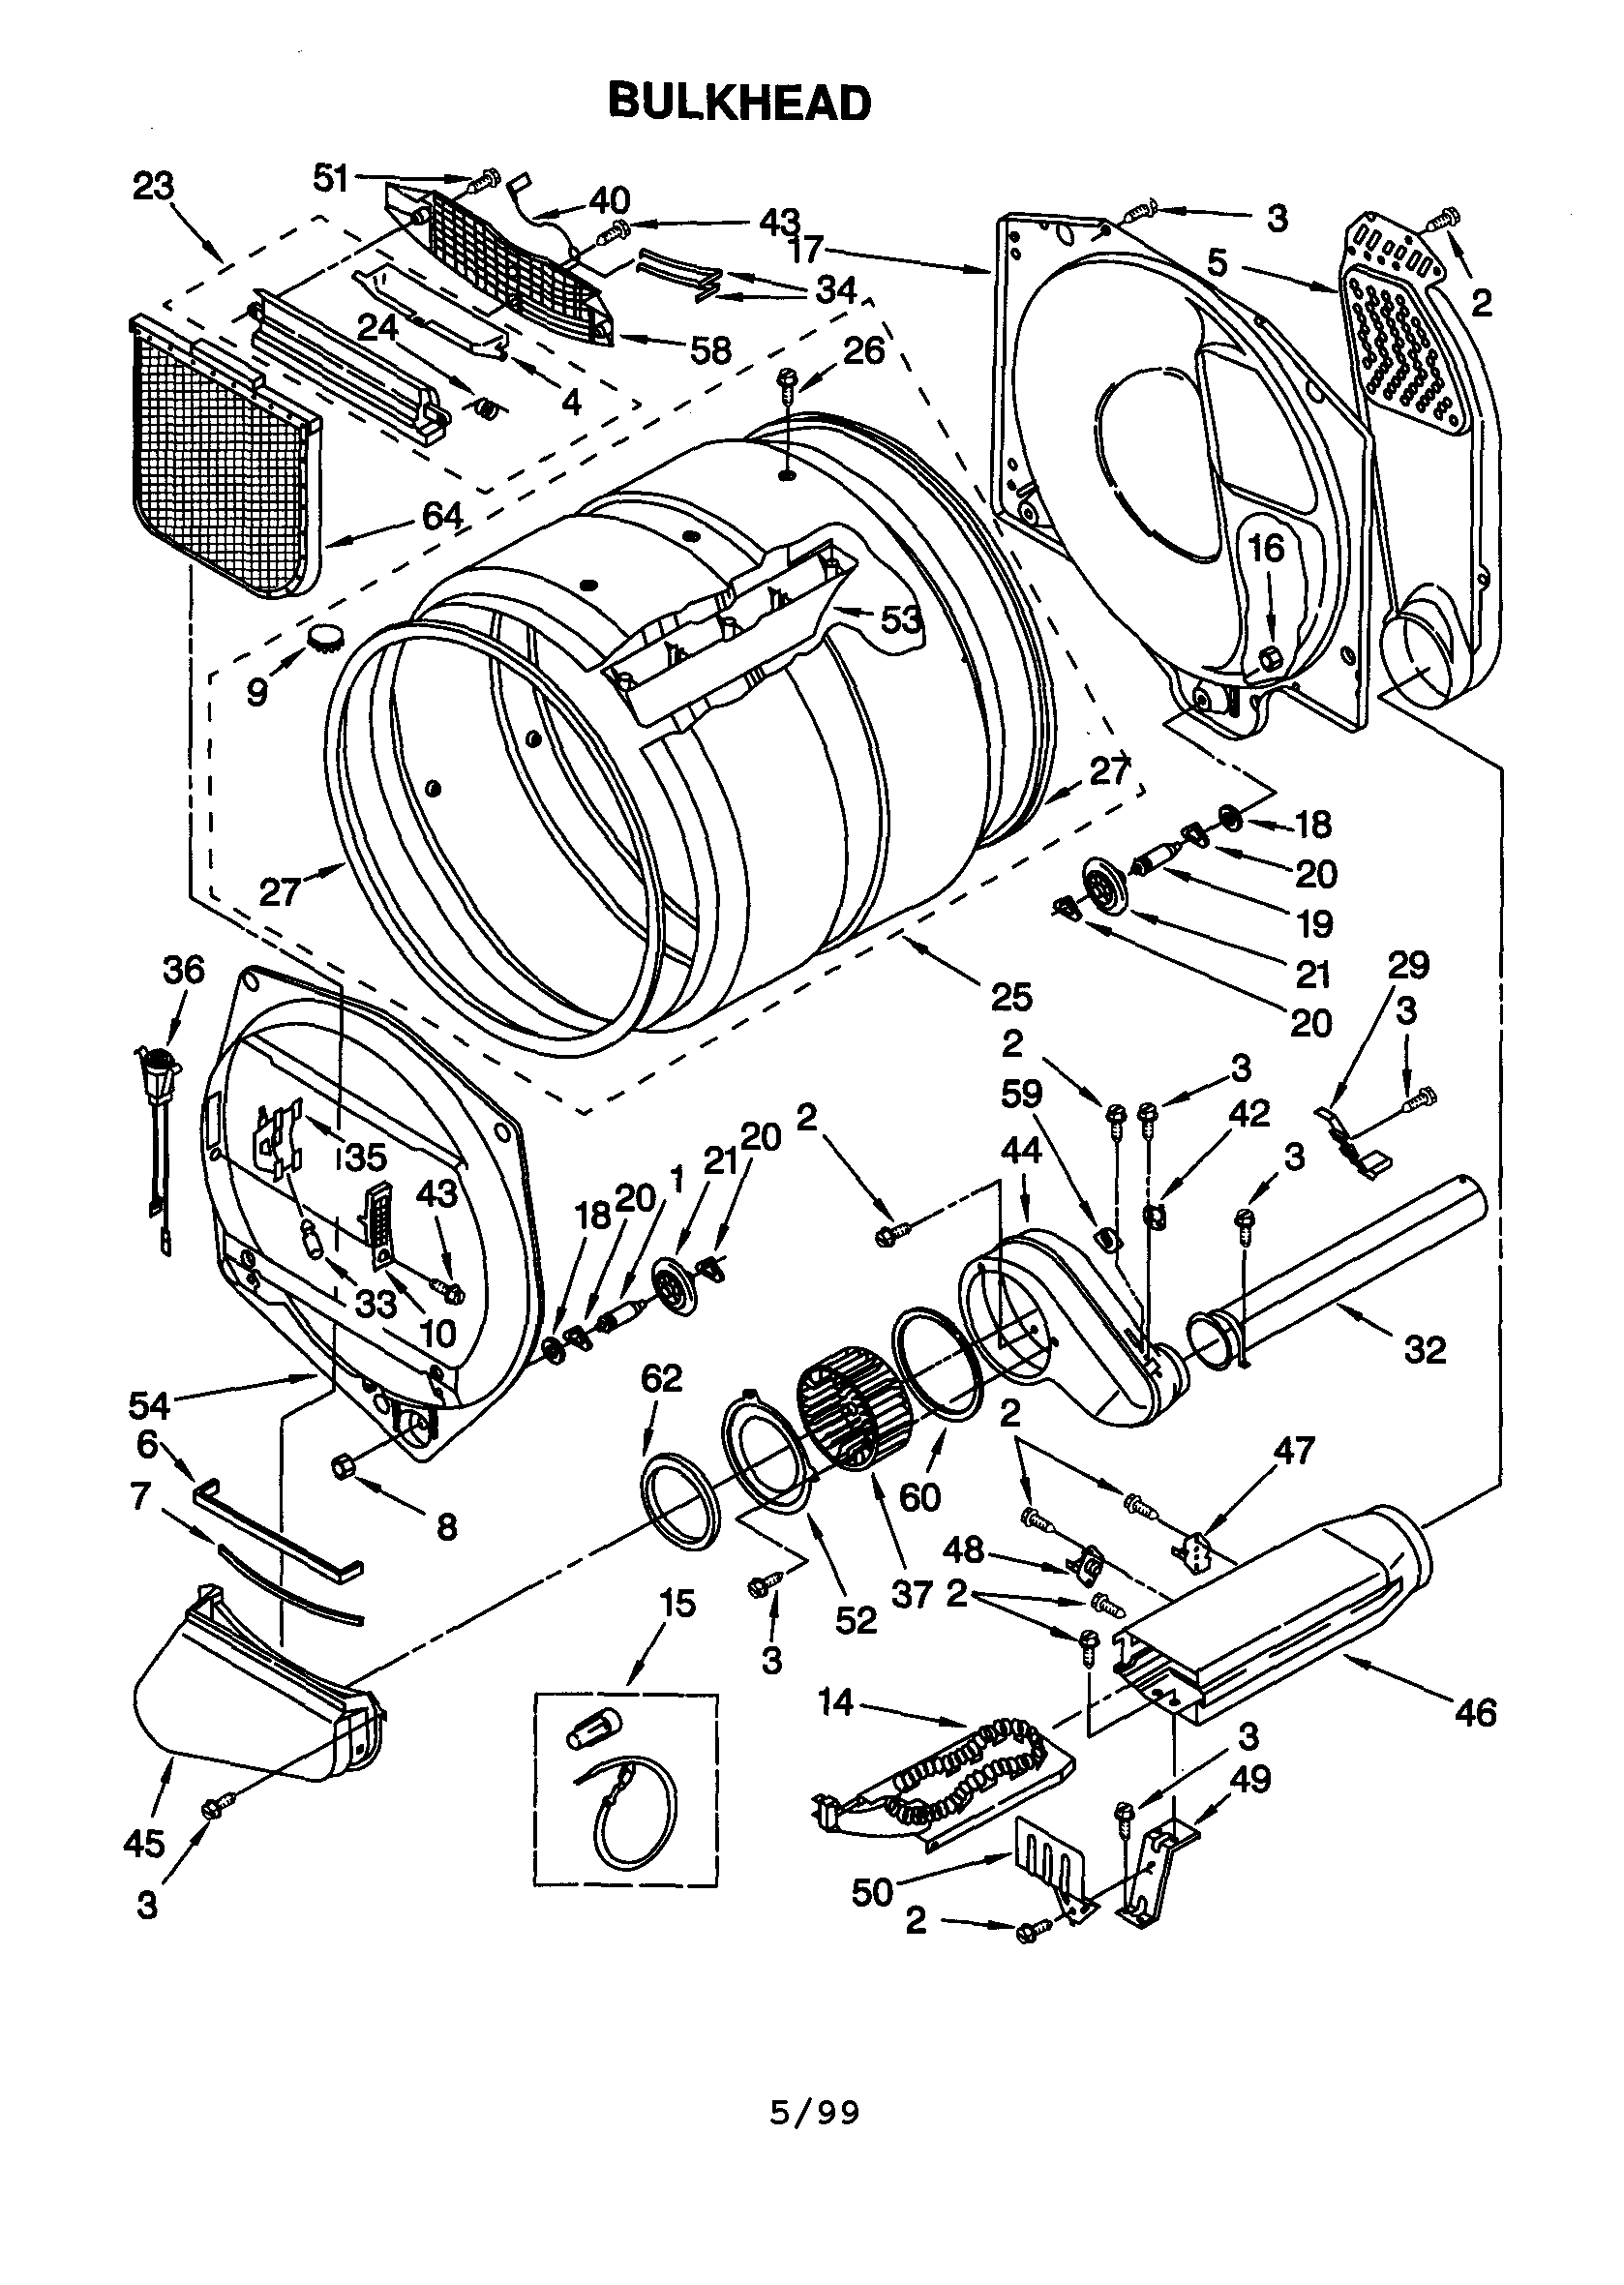 Kenmore 90 Series Dryer Parts Diagram 1991 Nissan 240sx Wiring Model 110 60912990 Repair